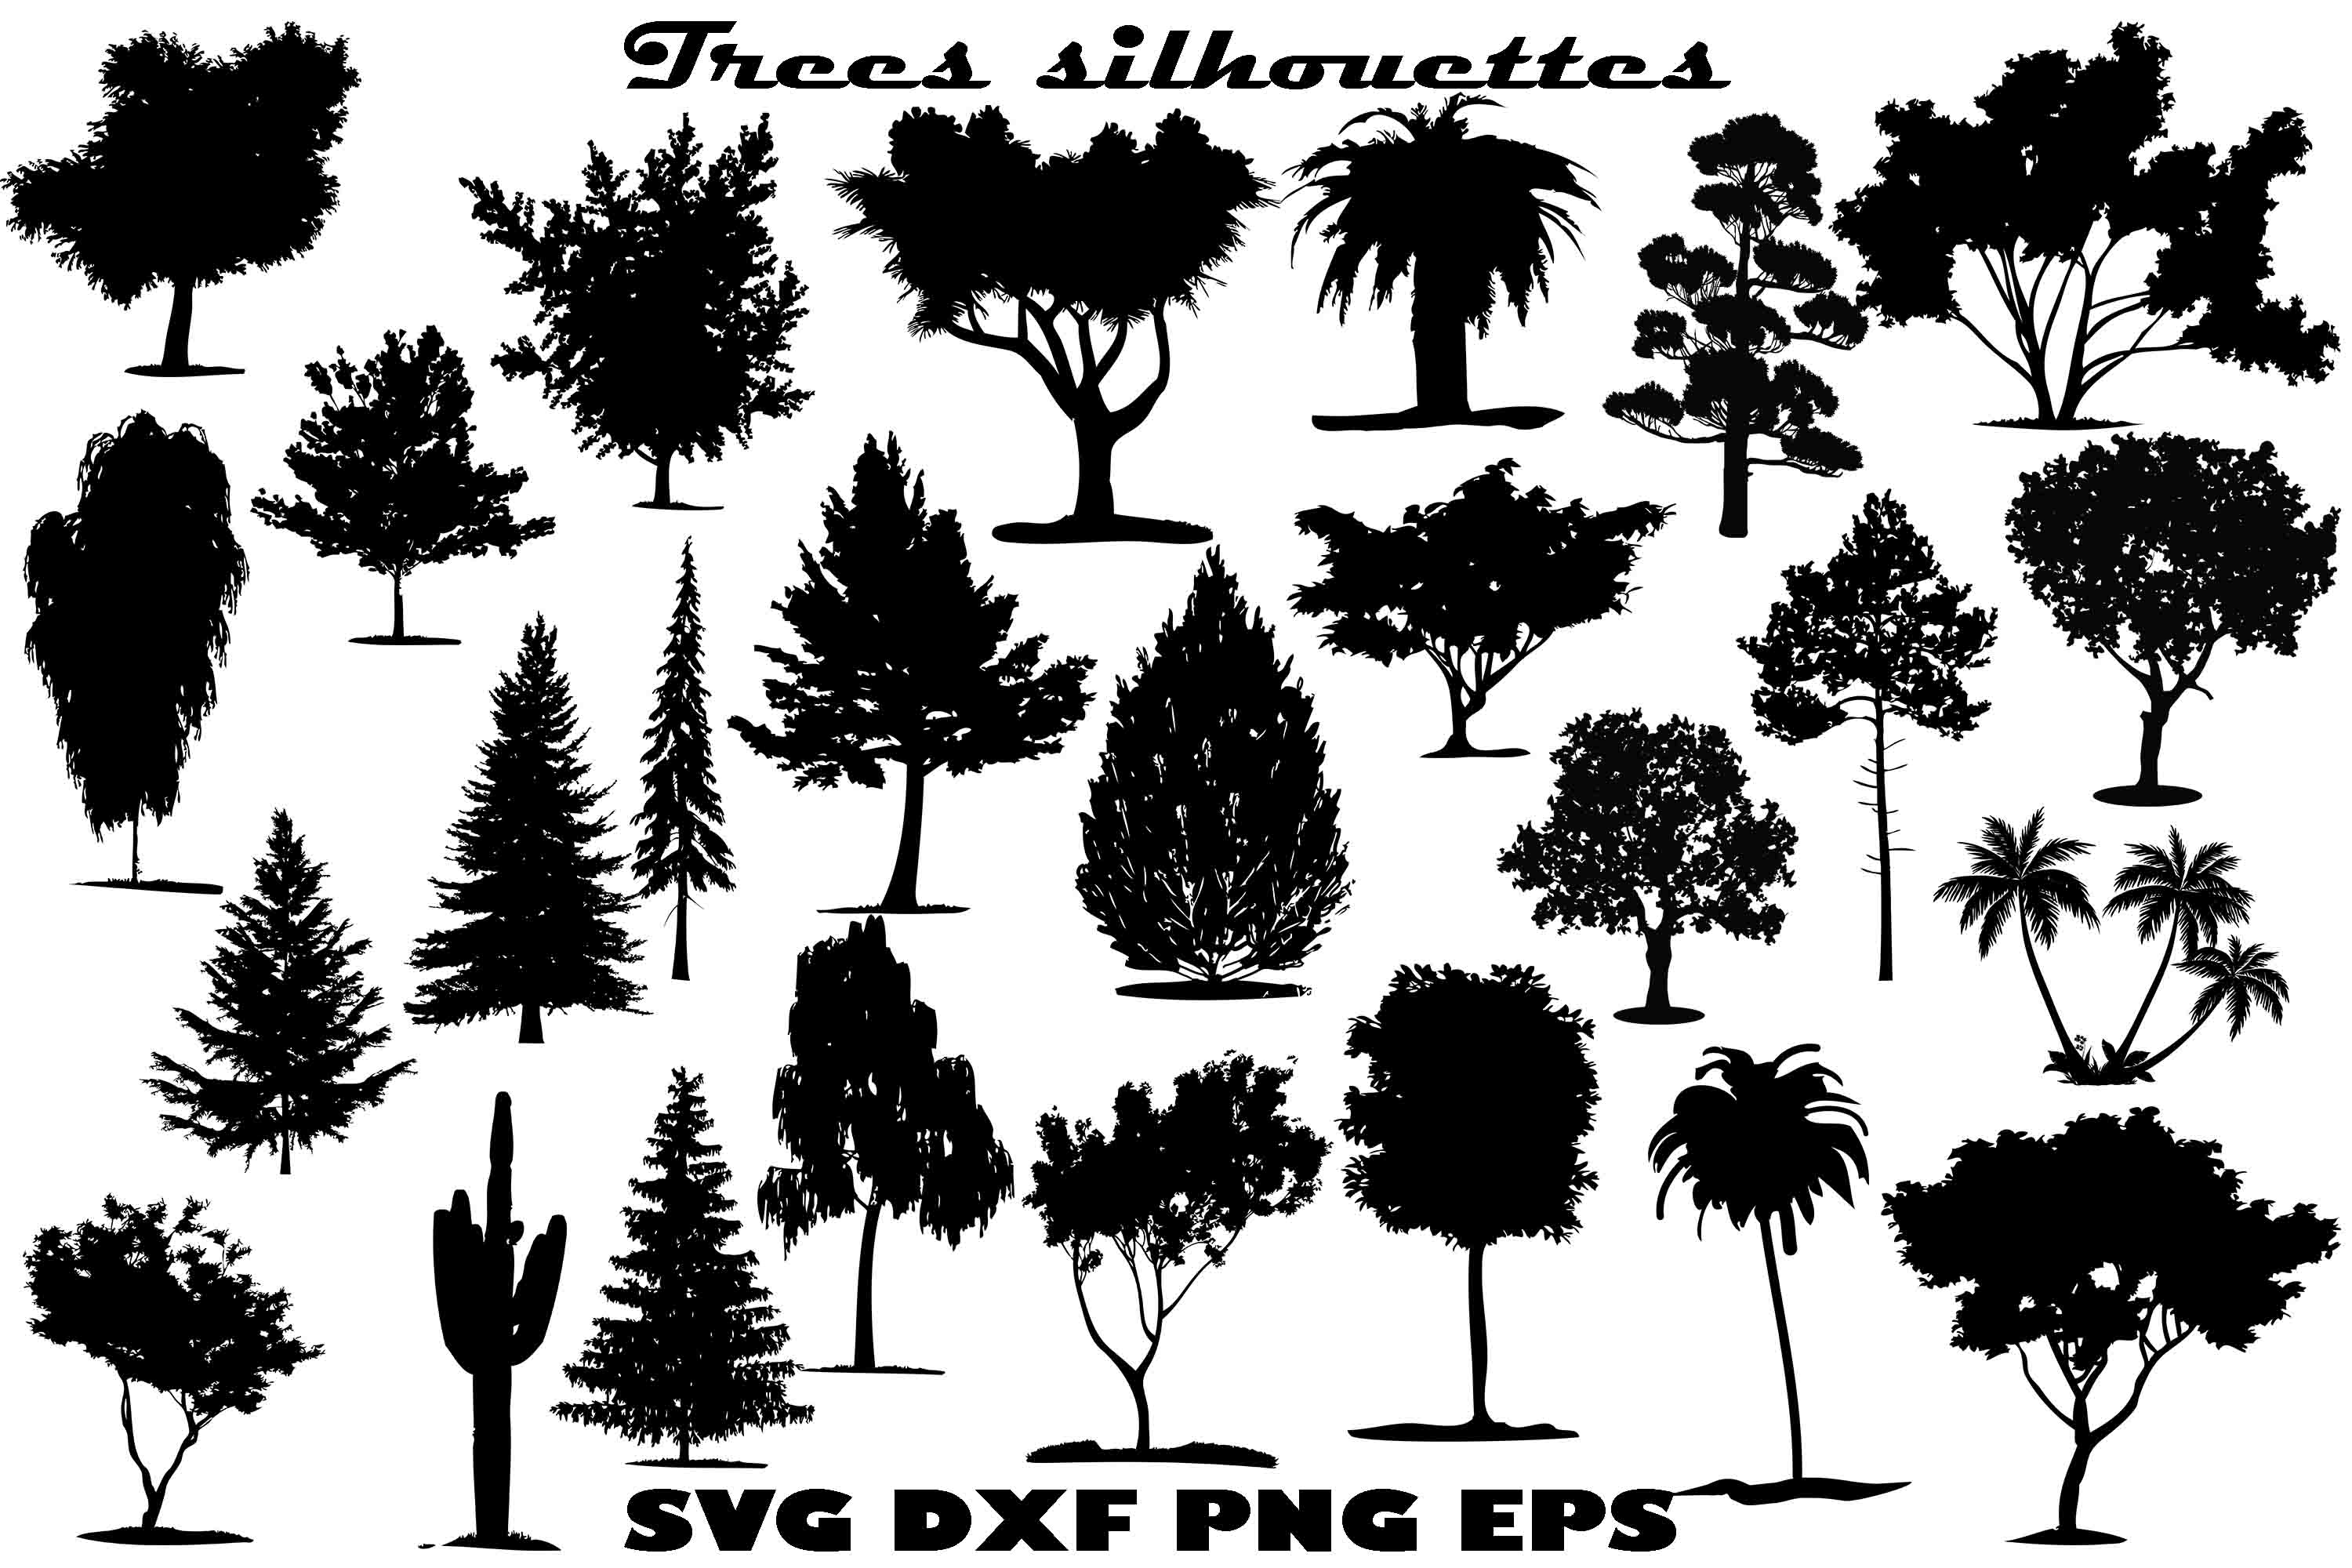 Download Free Tree Silhouette Graphic By Twelvepapers Creative Fabrica for Cricut Explore, Silhouette and other cutting machines.